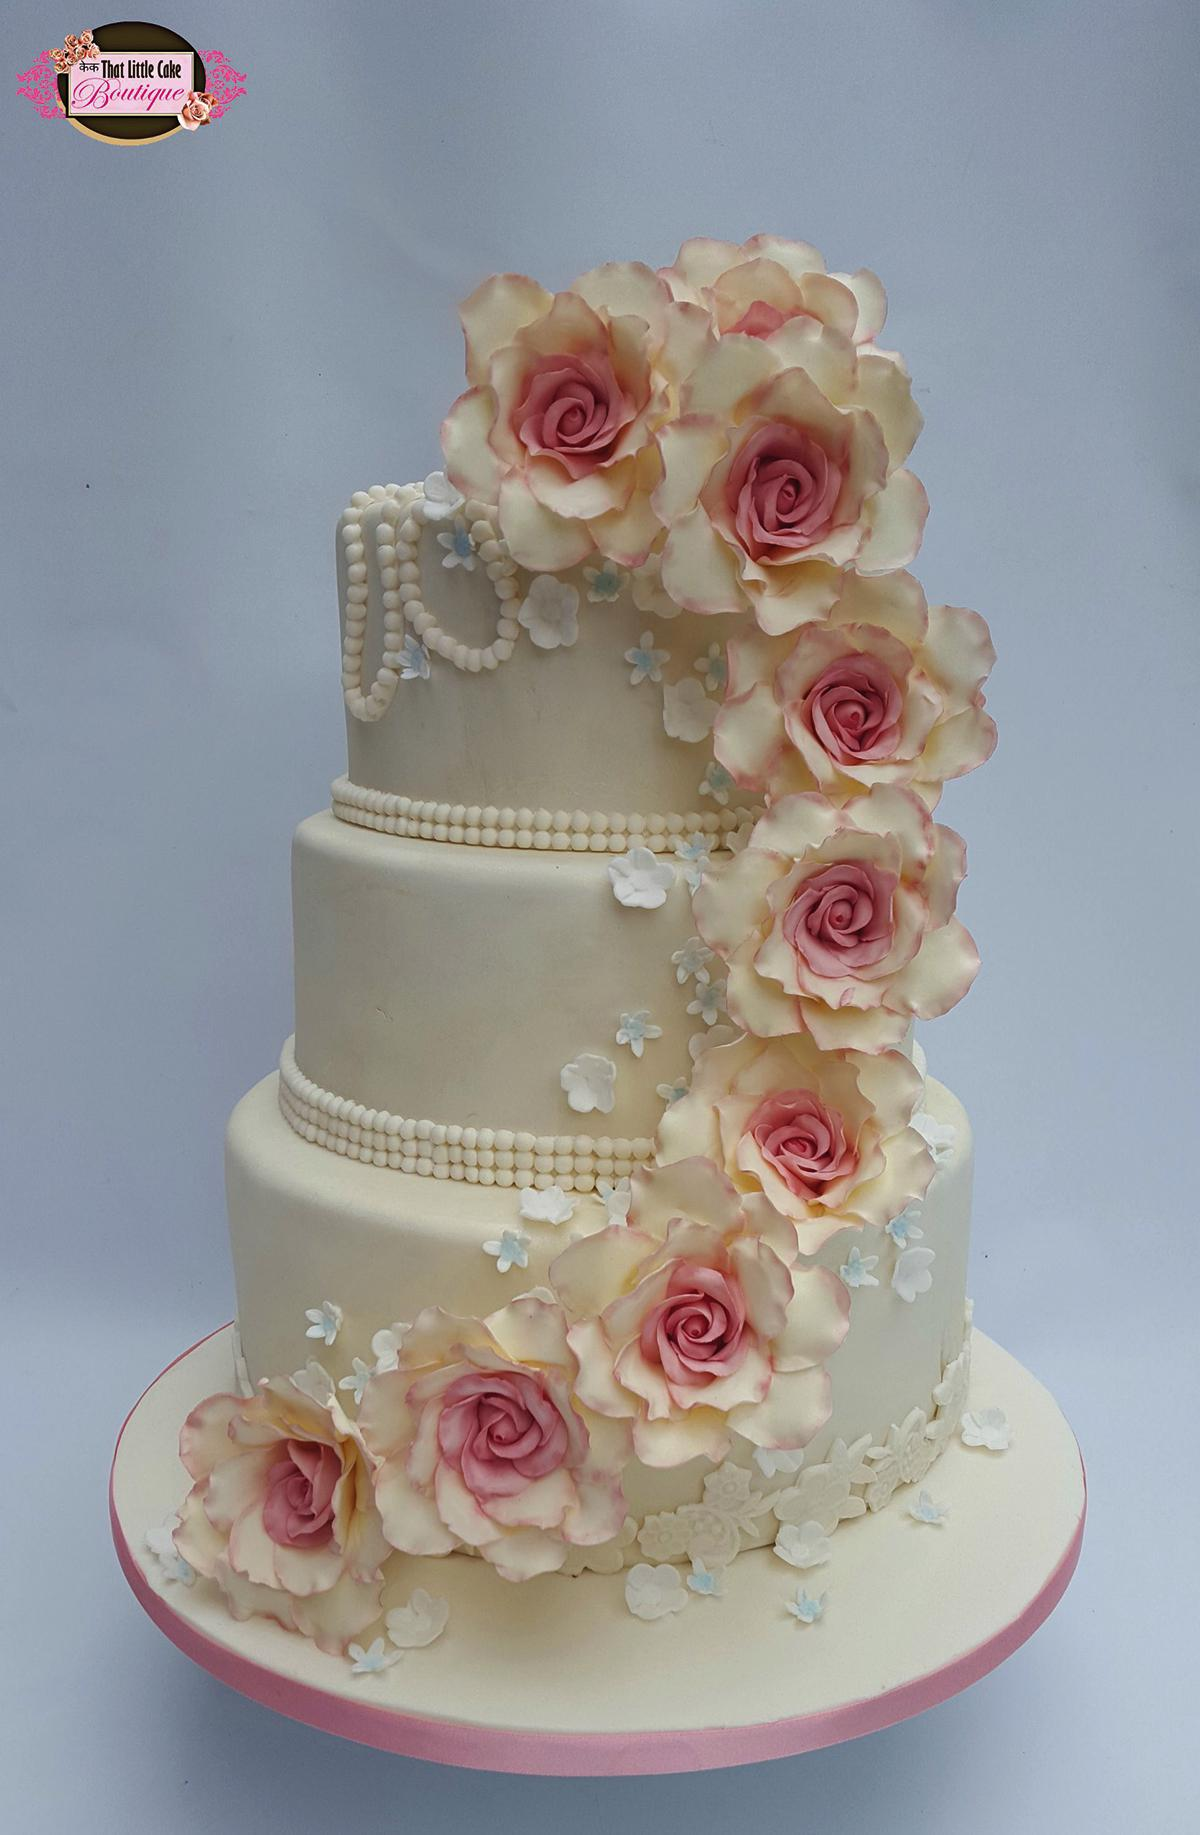 Floral wedding cakes - That little Cake boutique